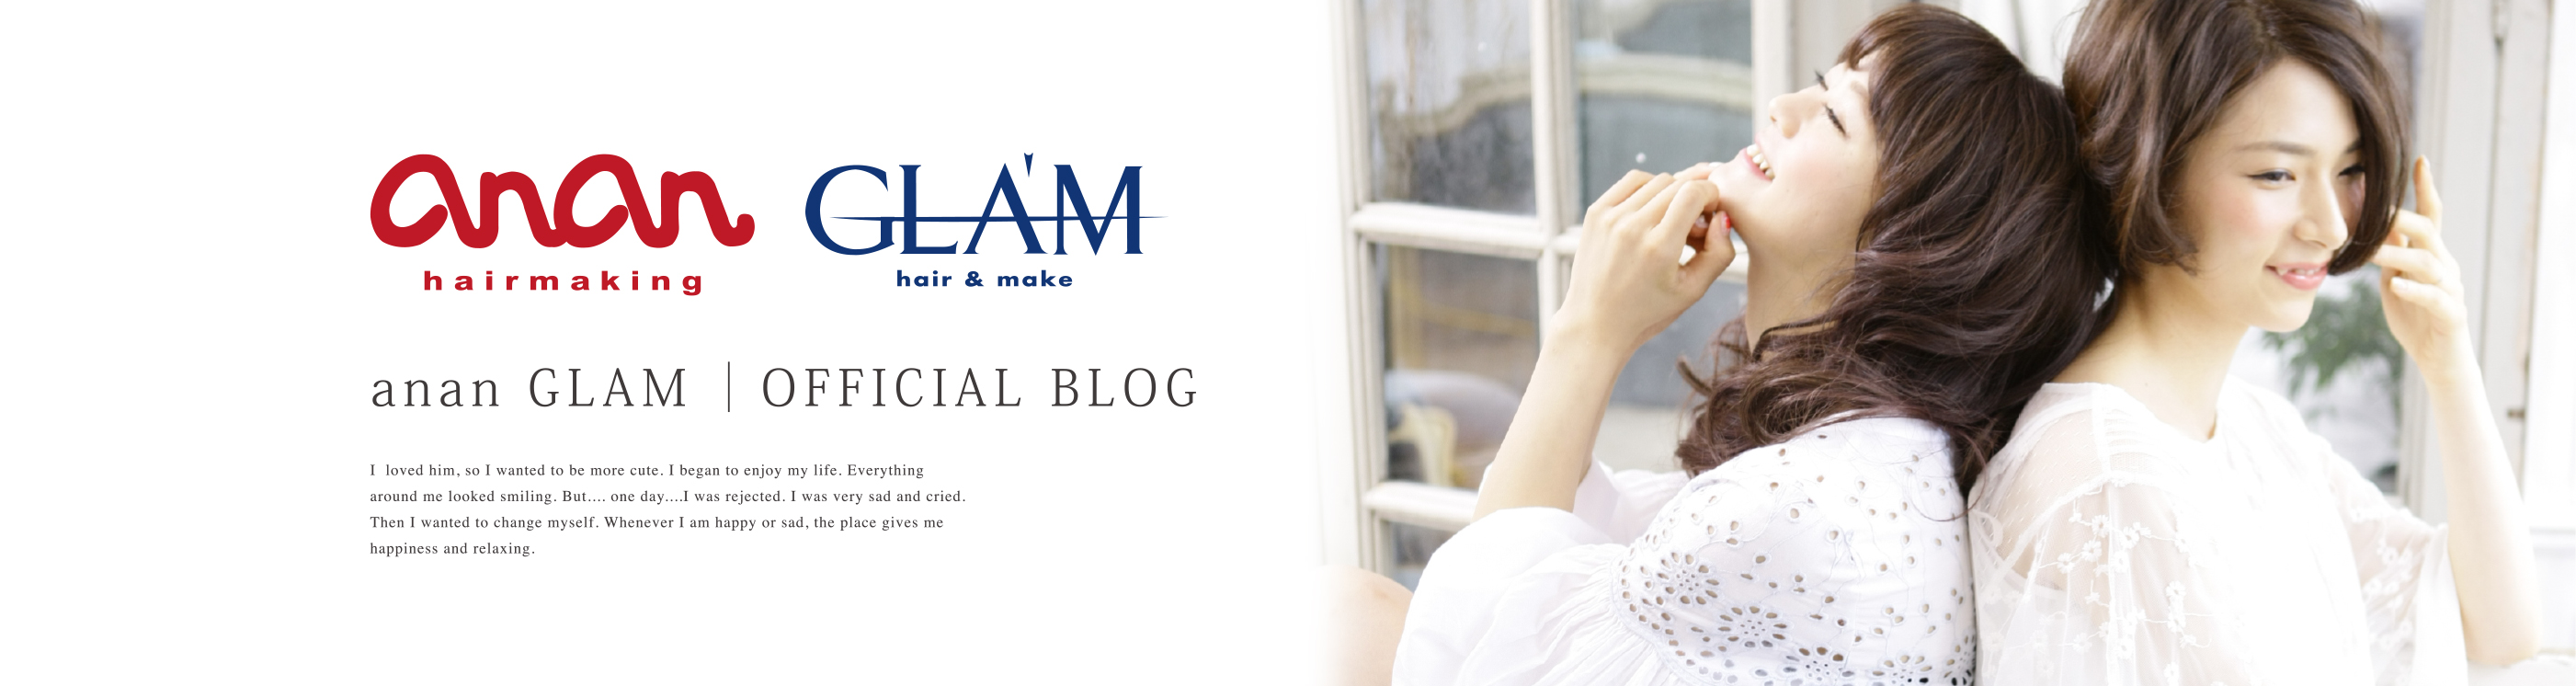 anan/GLAM BLOG